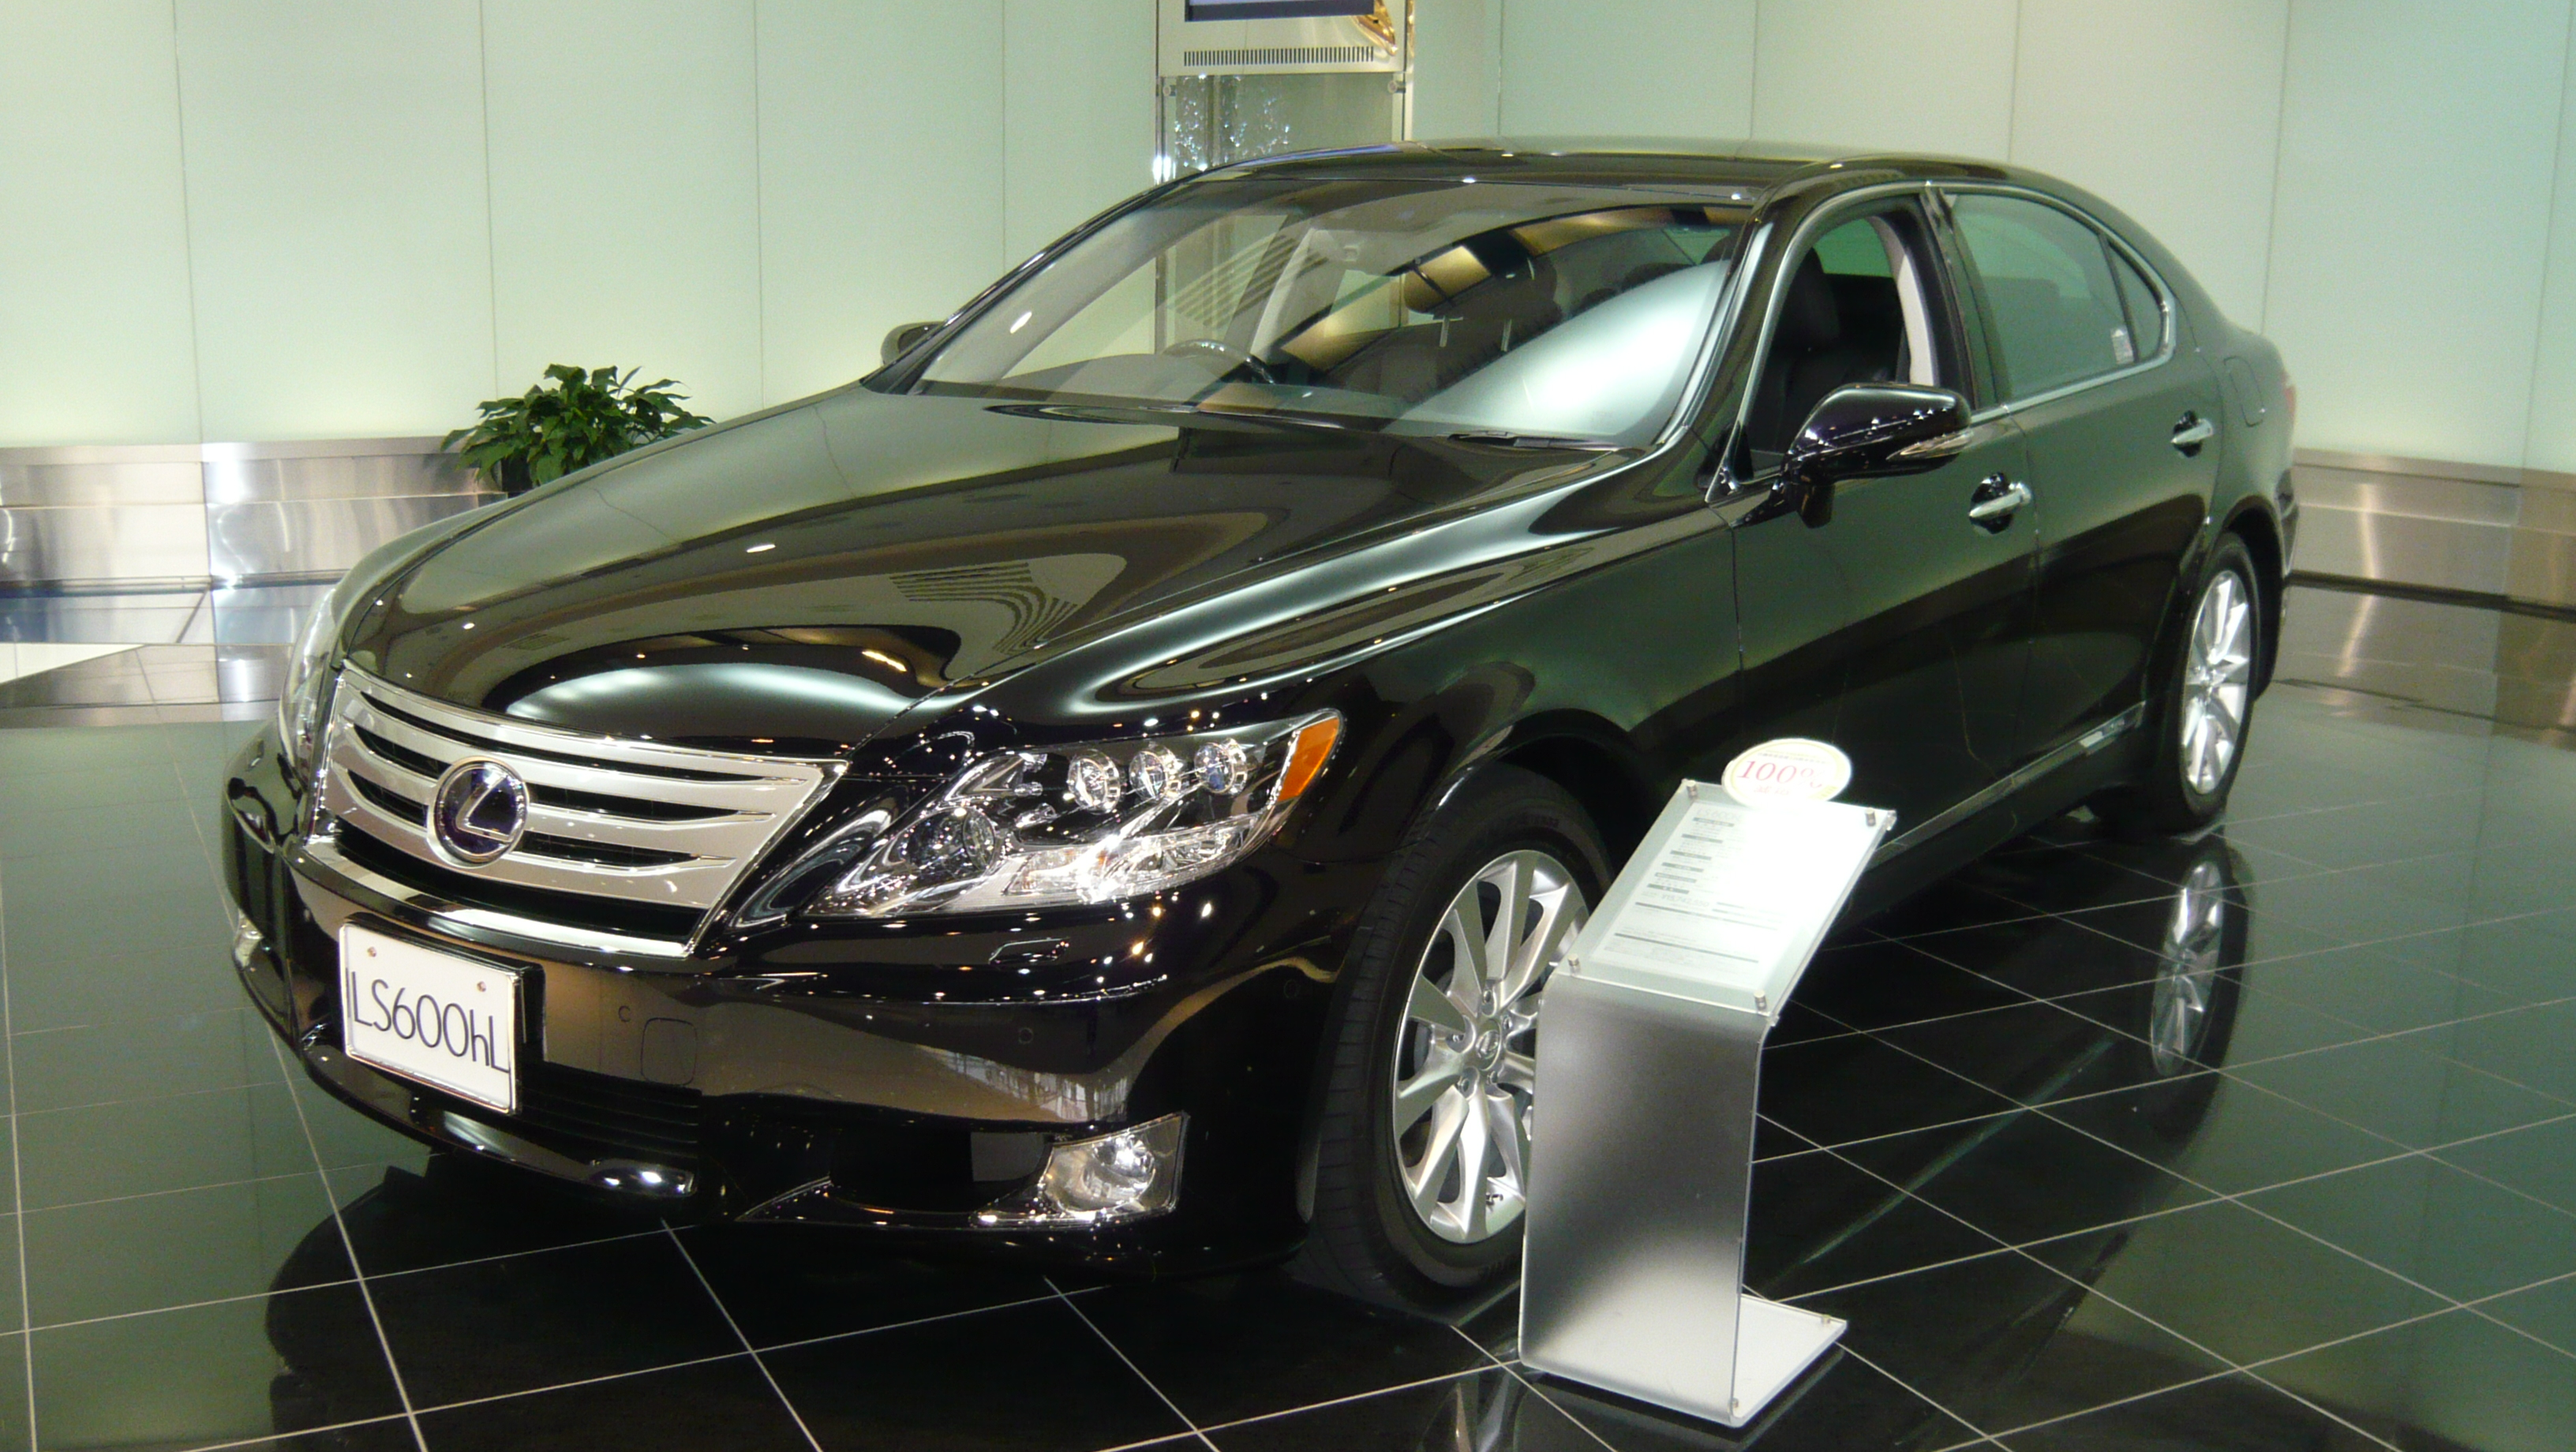 File:Lexus LS-h 1001.jpg - Wikimedia Commons